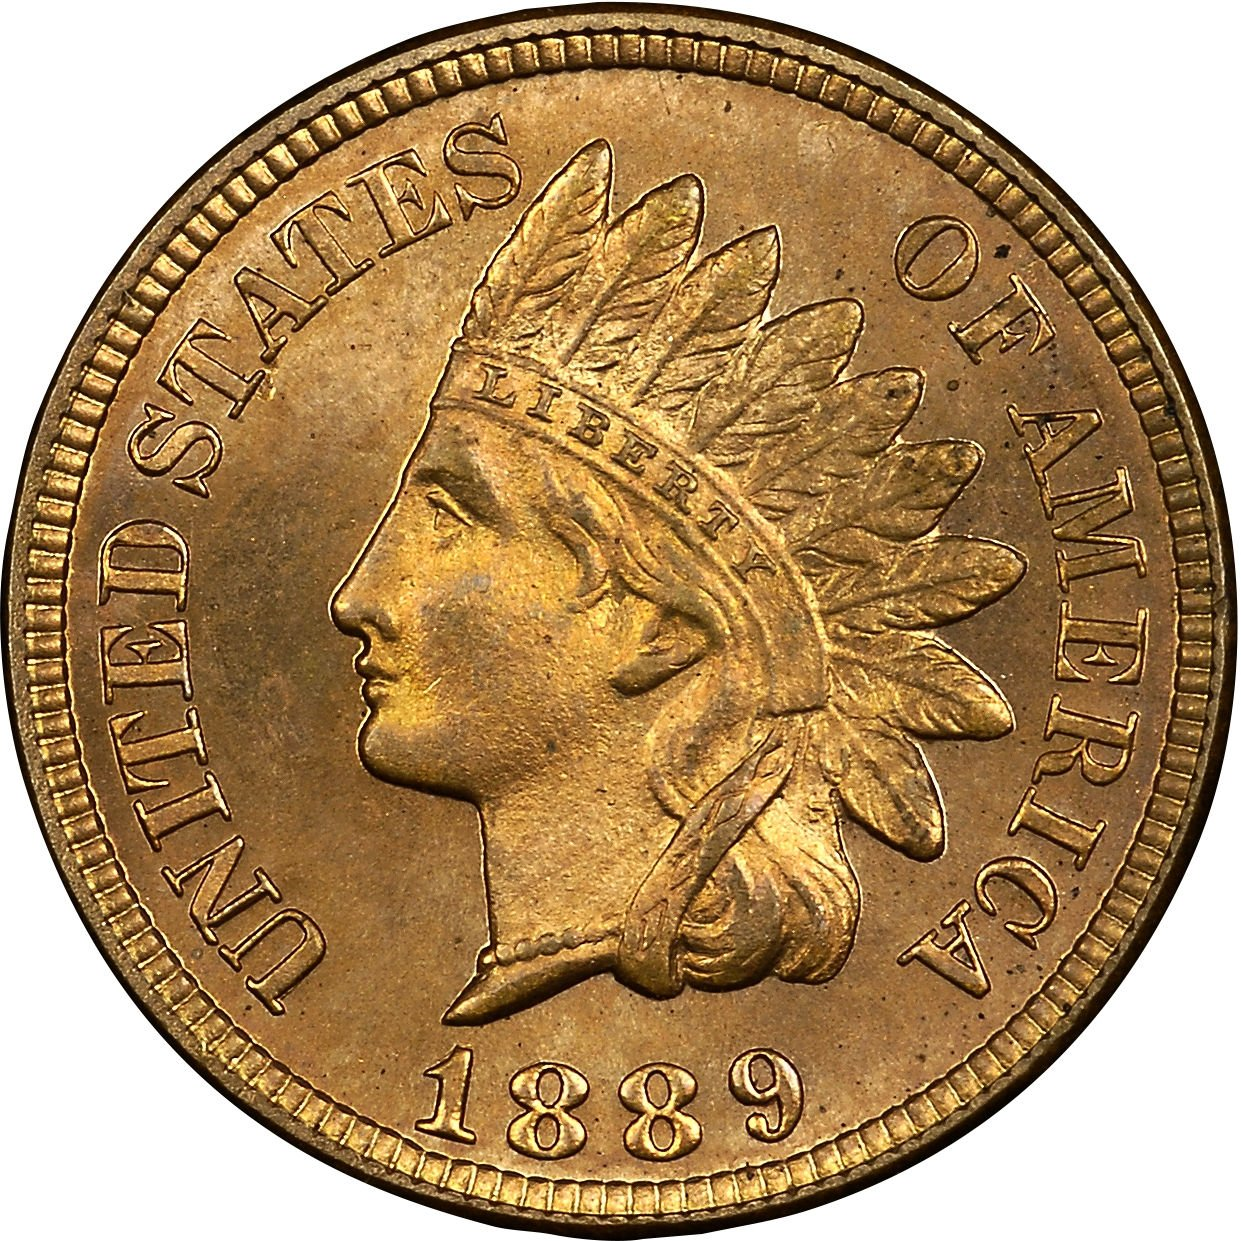 1889 RPD-027 Indian Head Penny - Photos courtesy of Heritage Auctions